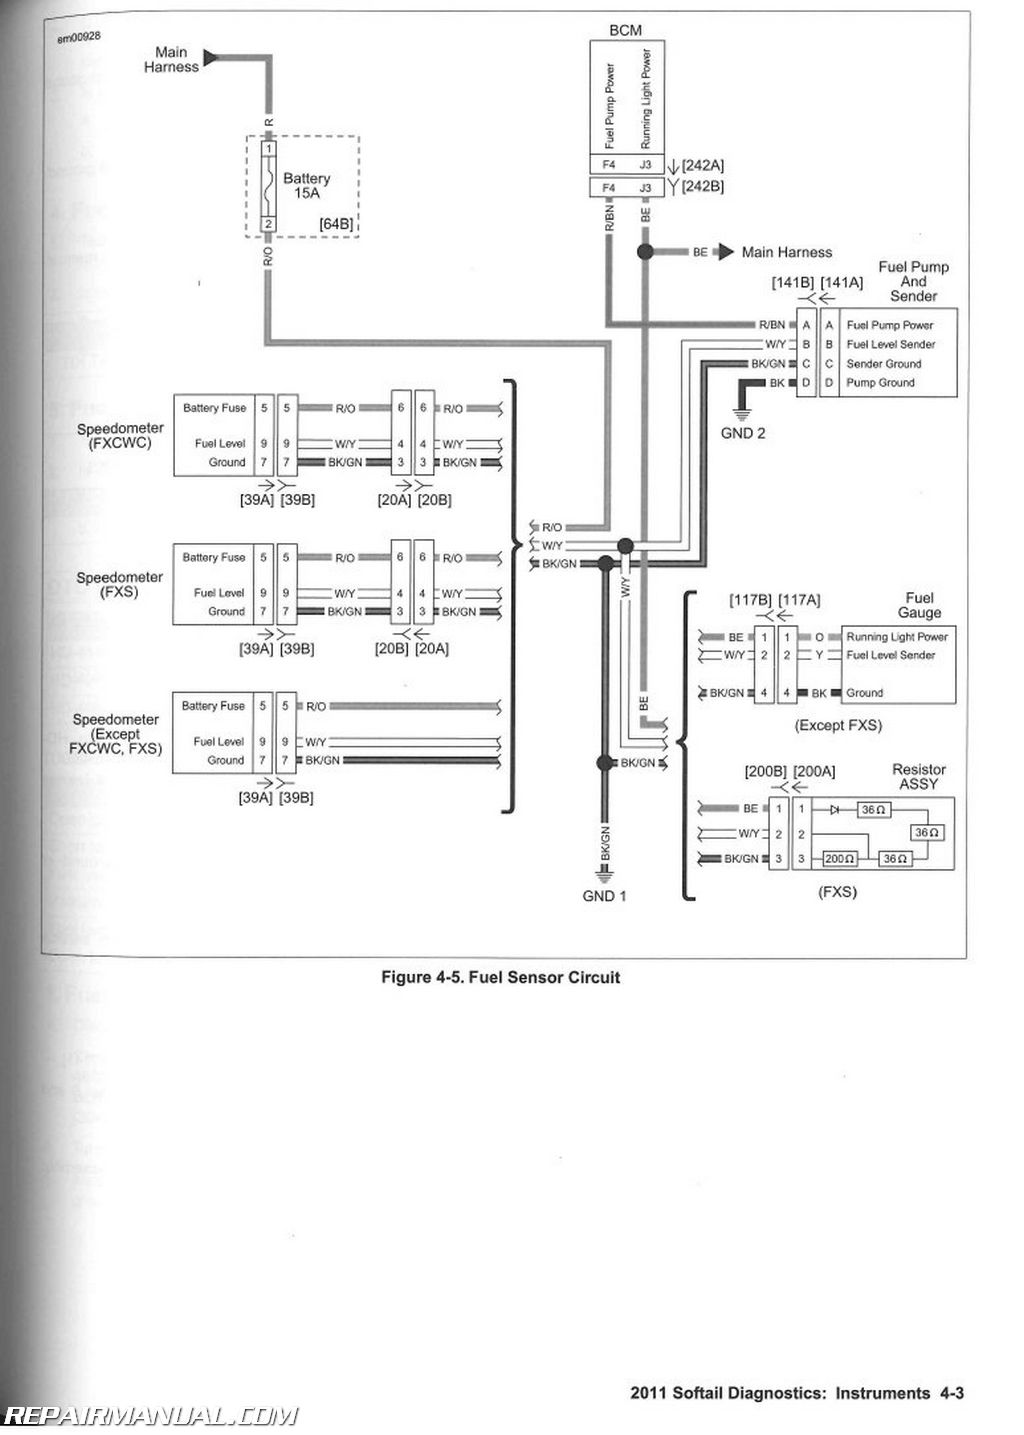 Auto Meter Tach Wiring Diagram For Motorcycle